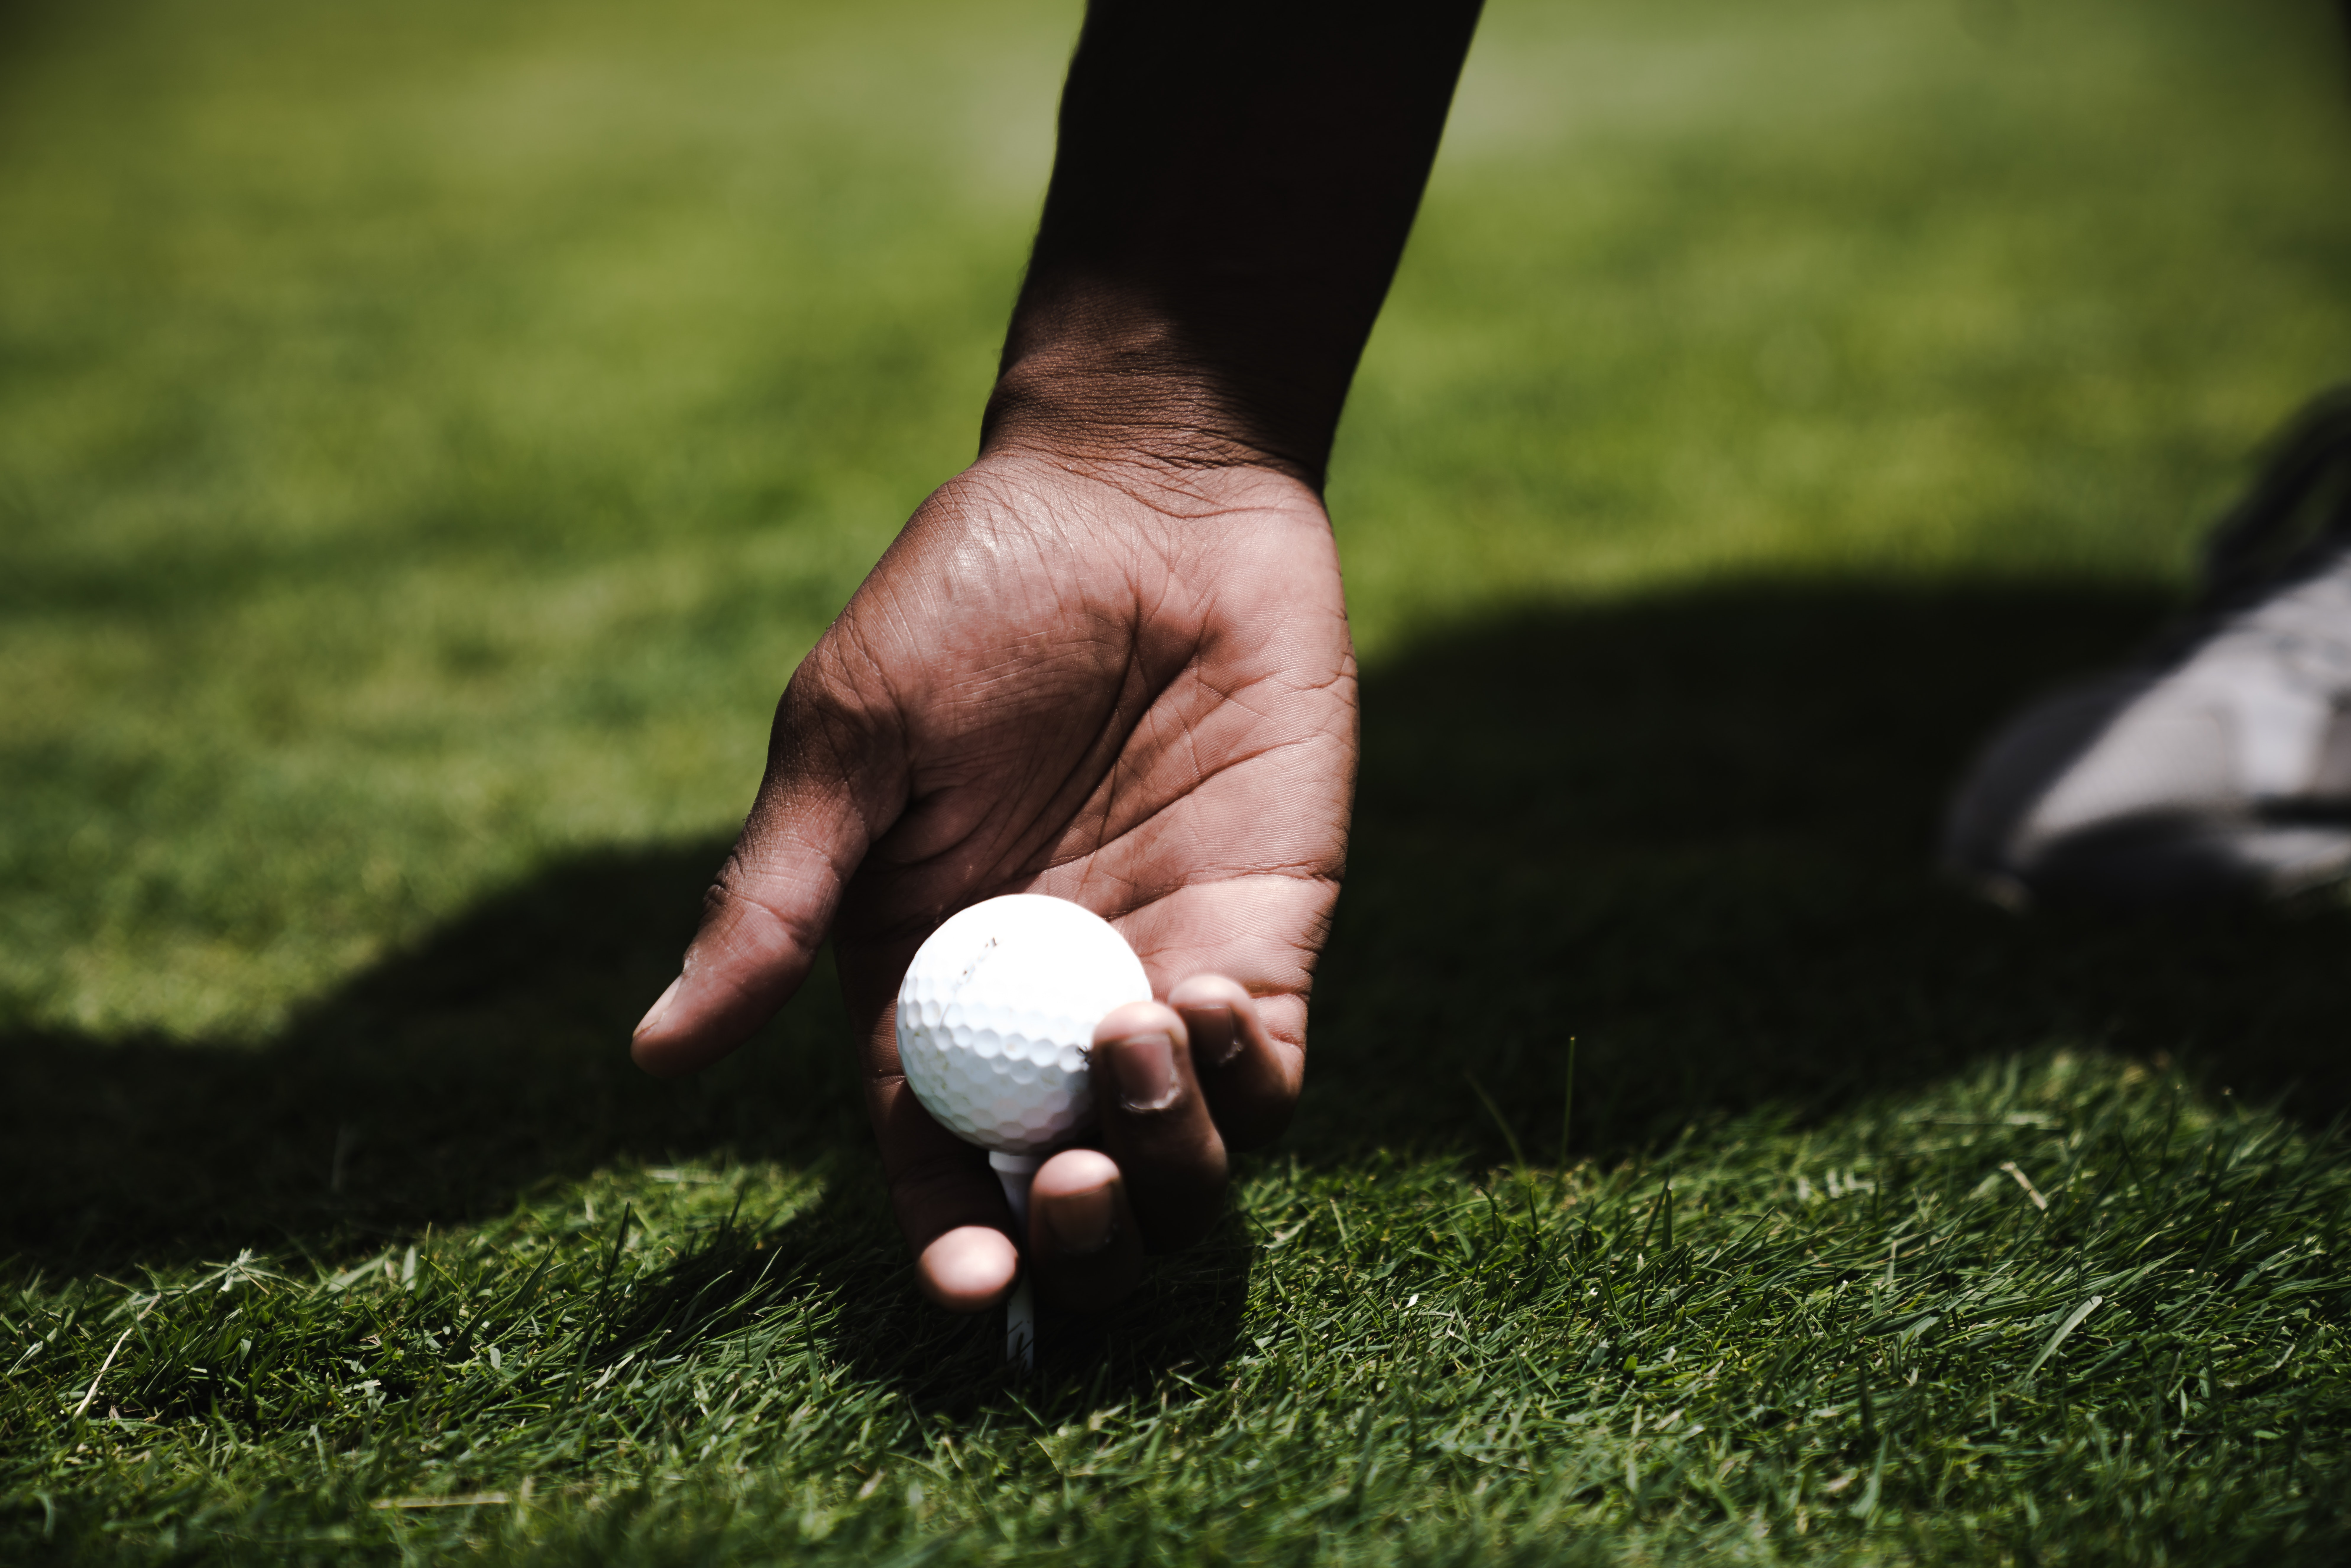 134762 download wallpaper Sports, Golf, Hand, Ball, Lawn screensavers and pictures for free